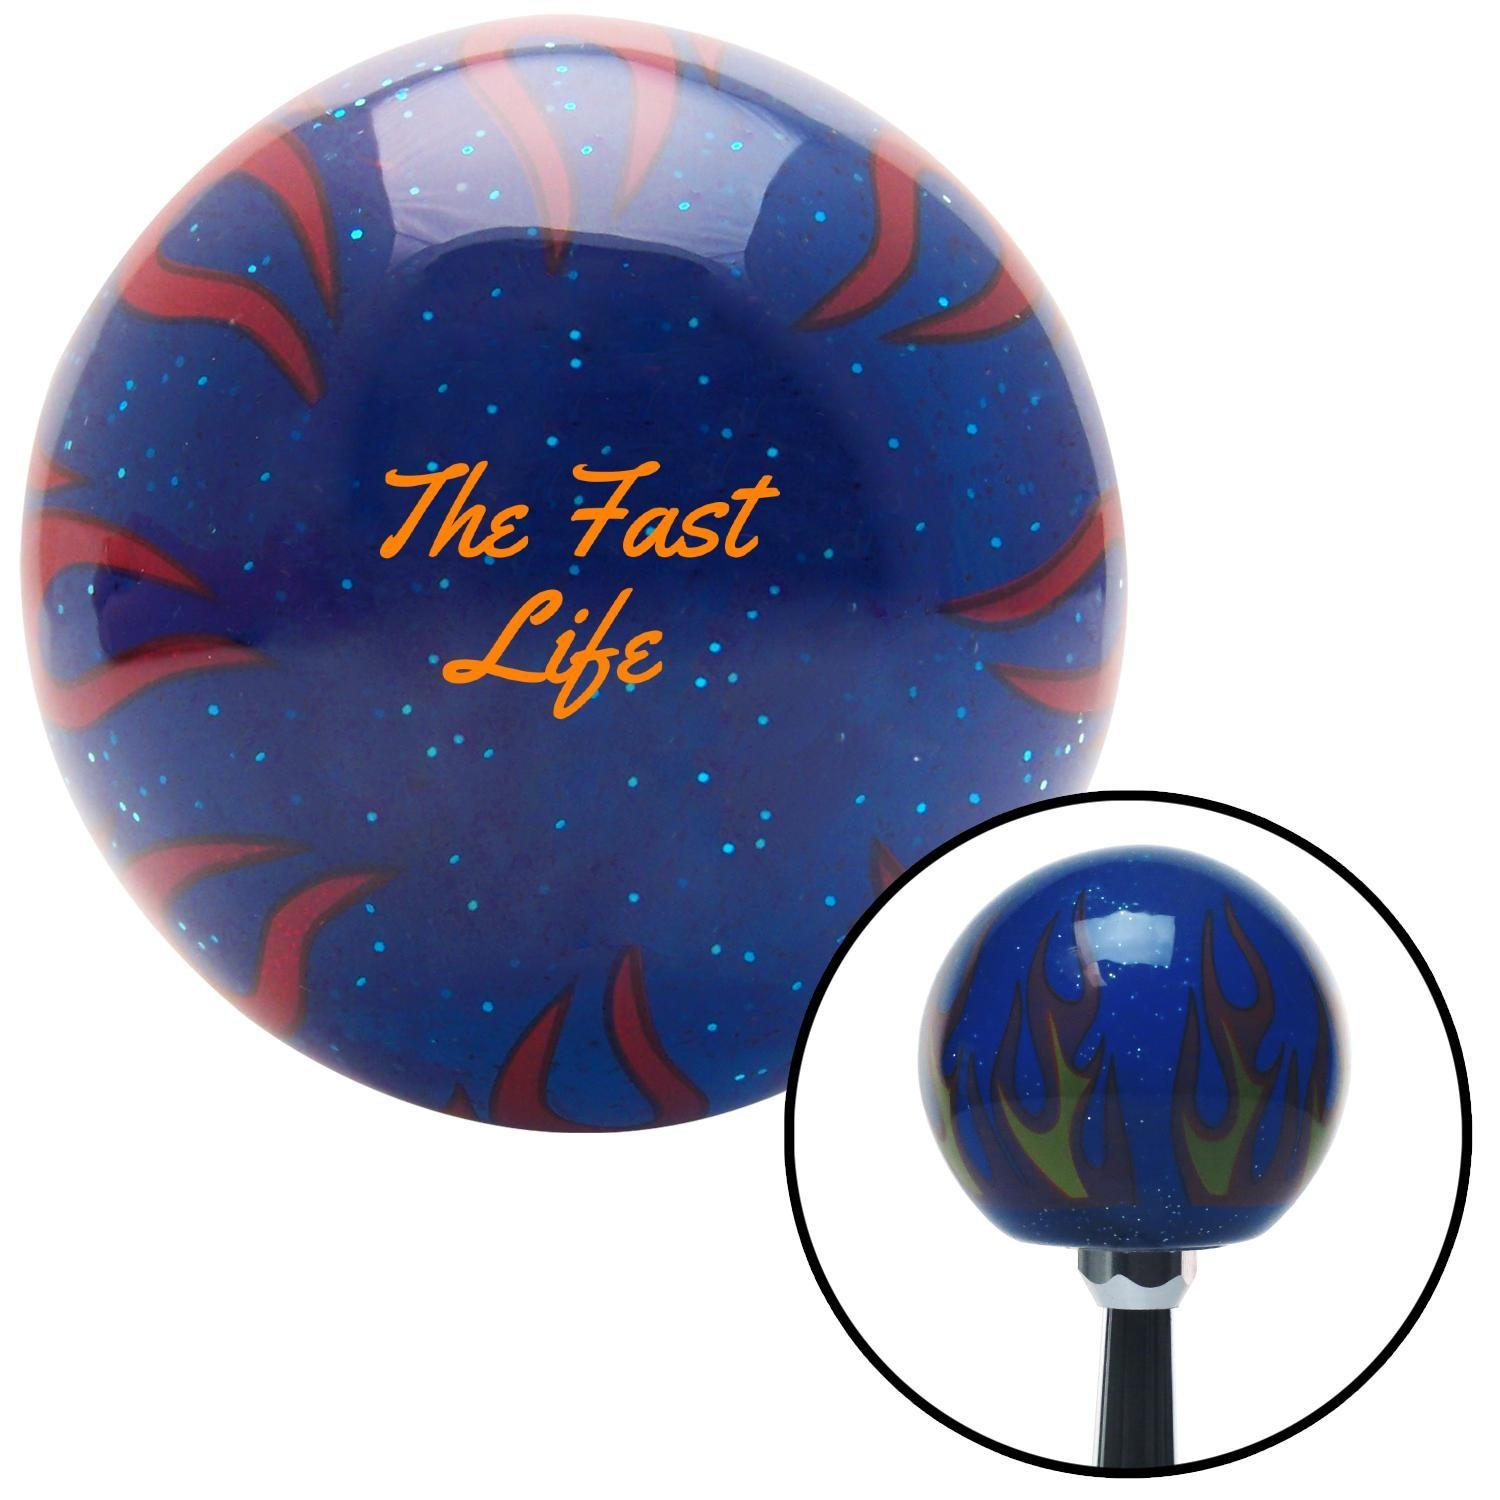 American Shifter 297917 Shift Knob Orange The Fast Life Blue Flame Metal Flake with M16 x 1.5 Insert